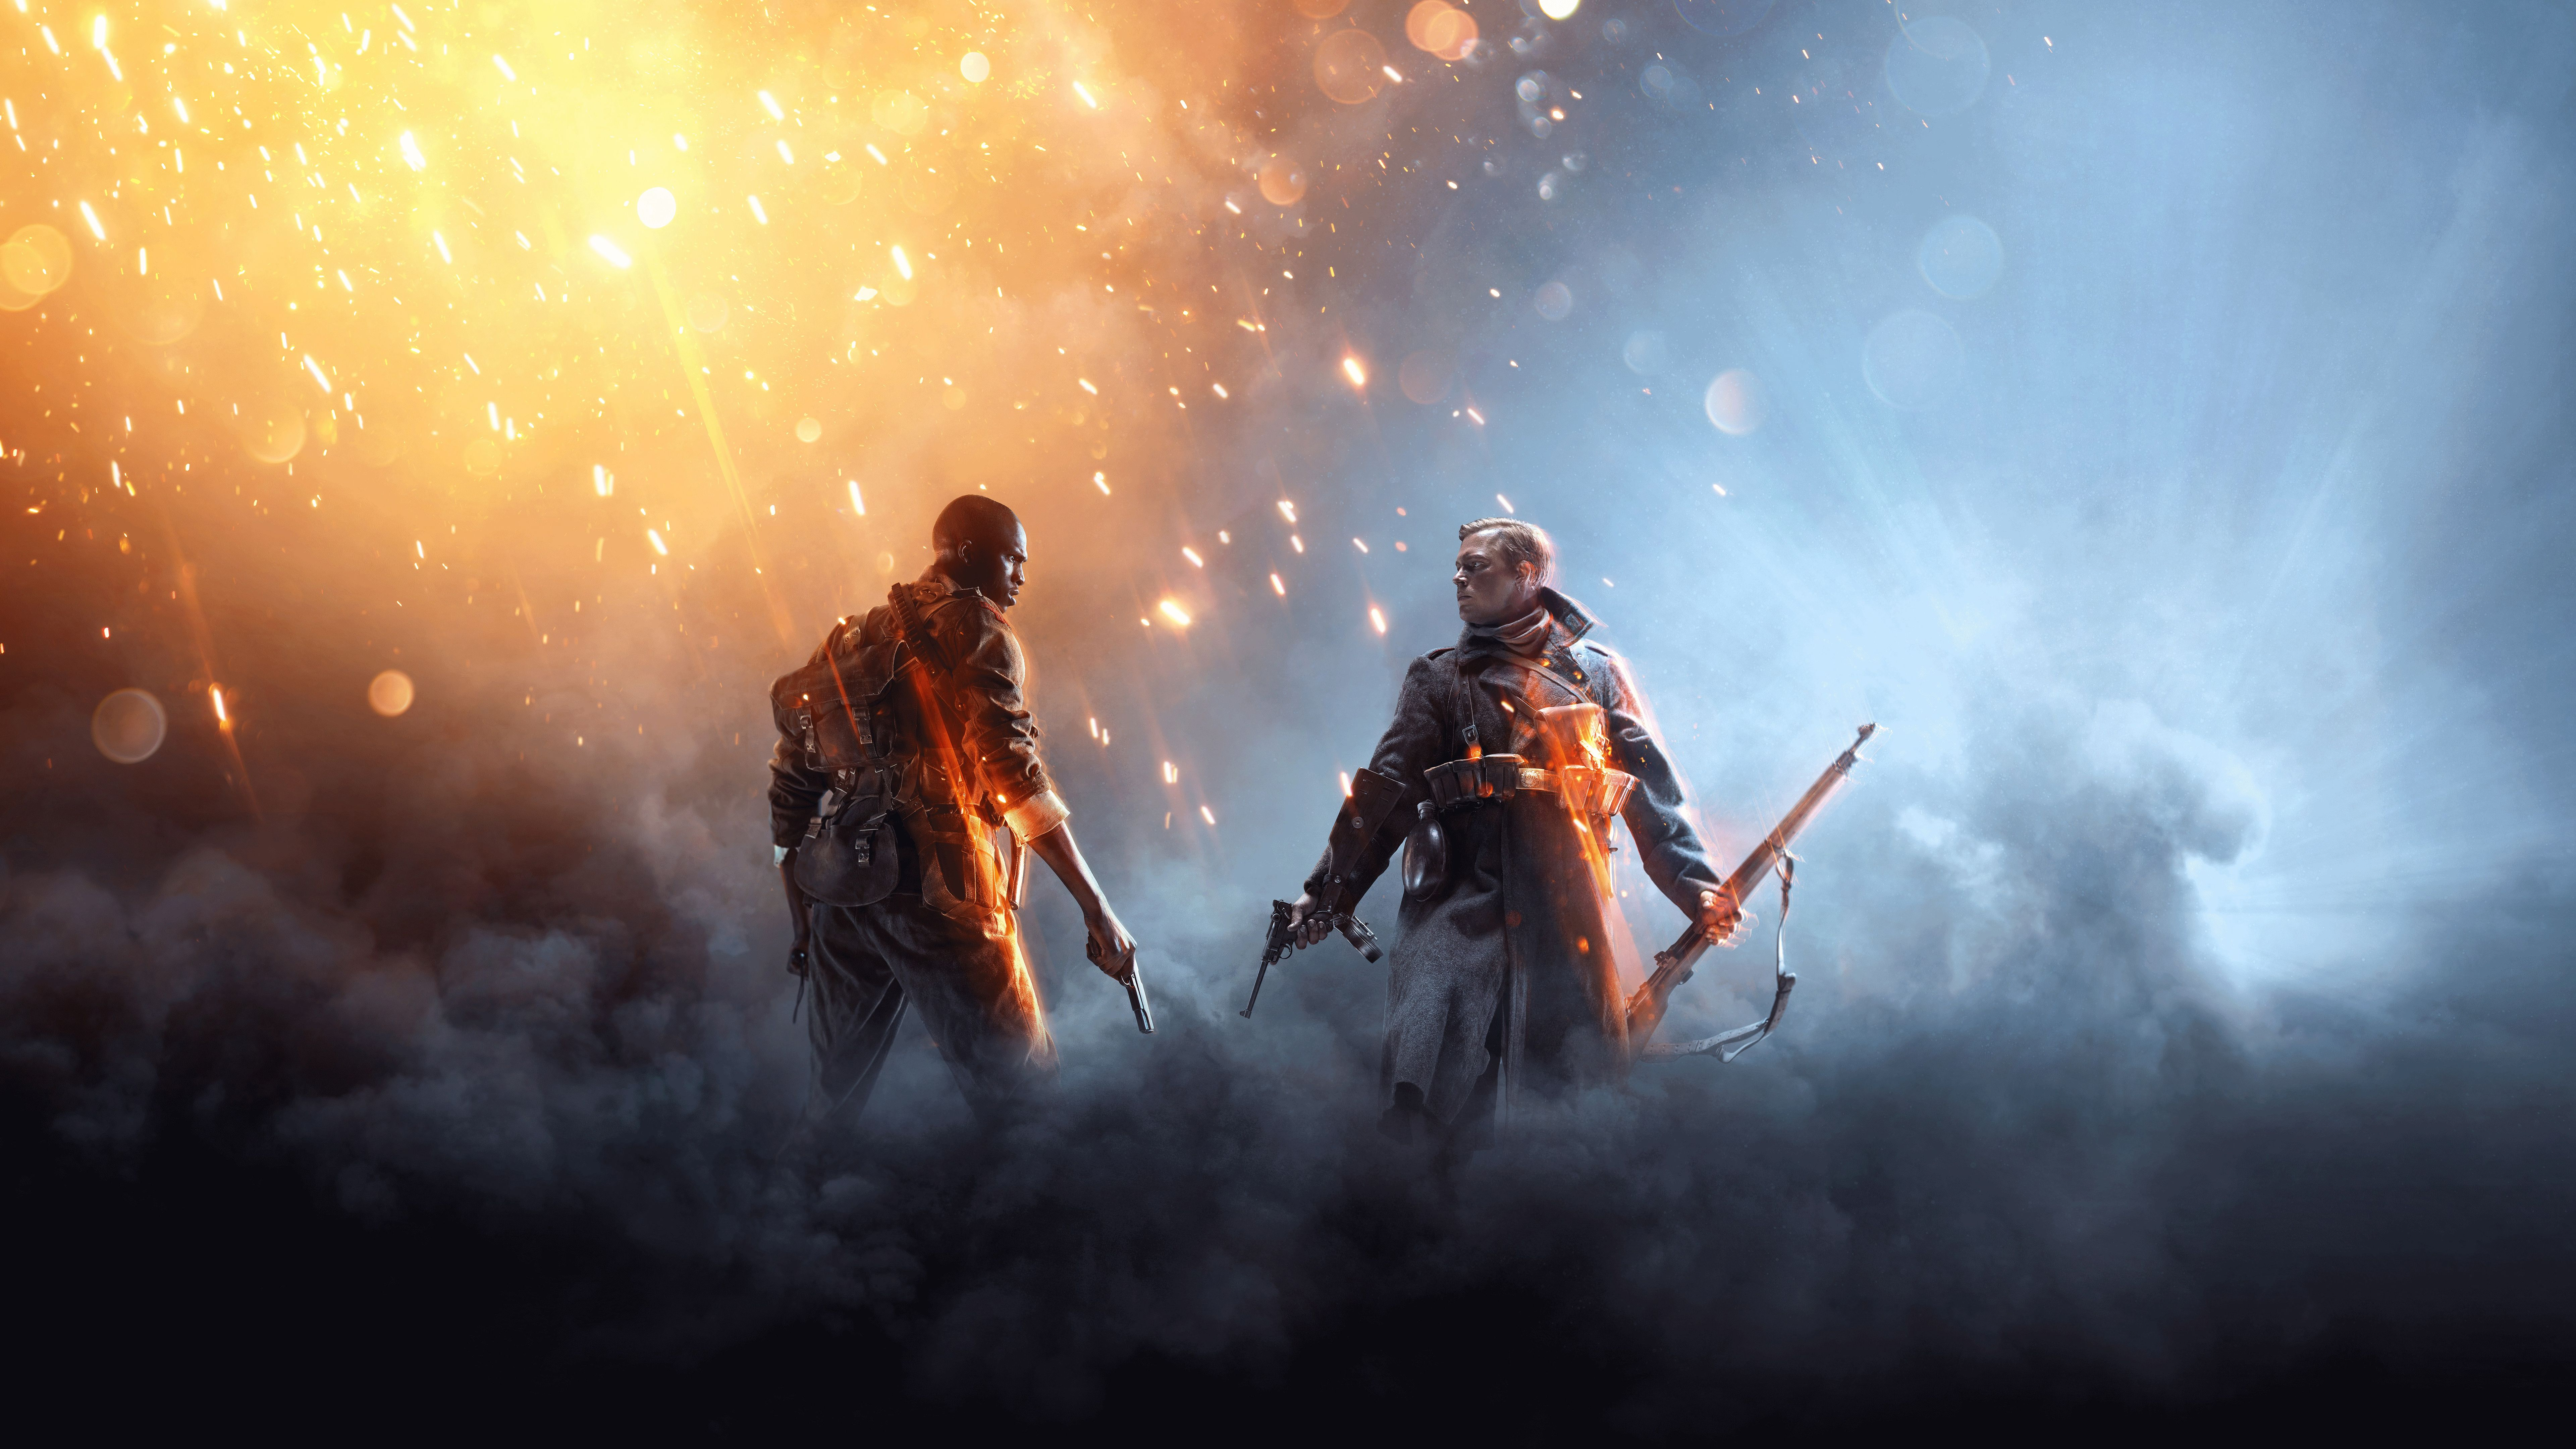 4k Bf1 Wallpapers Top Free 4k Bf1 Backgrounds